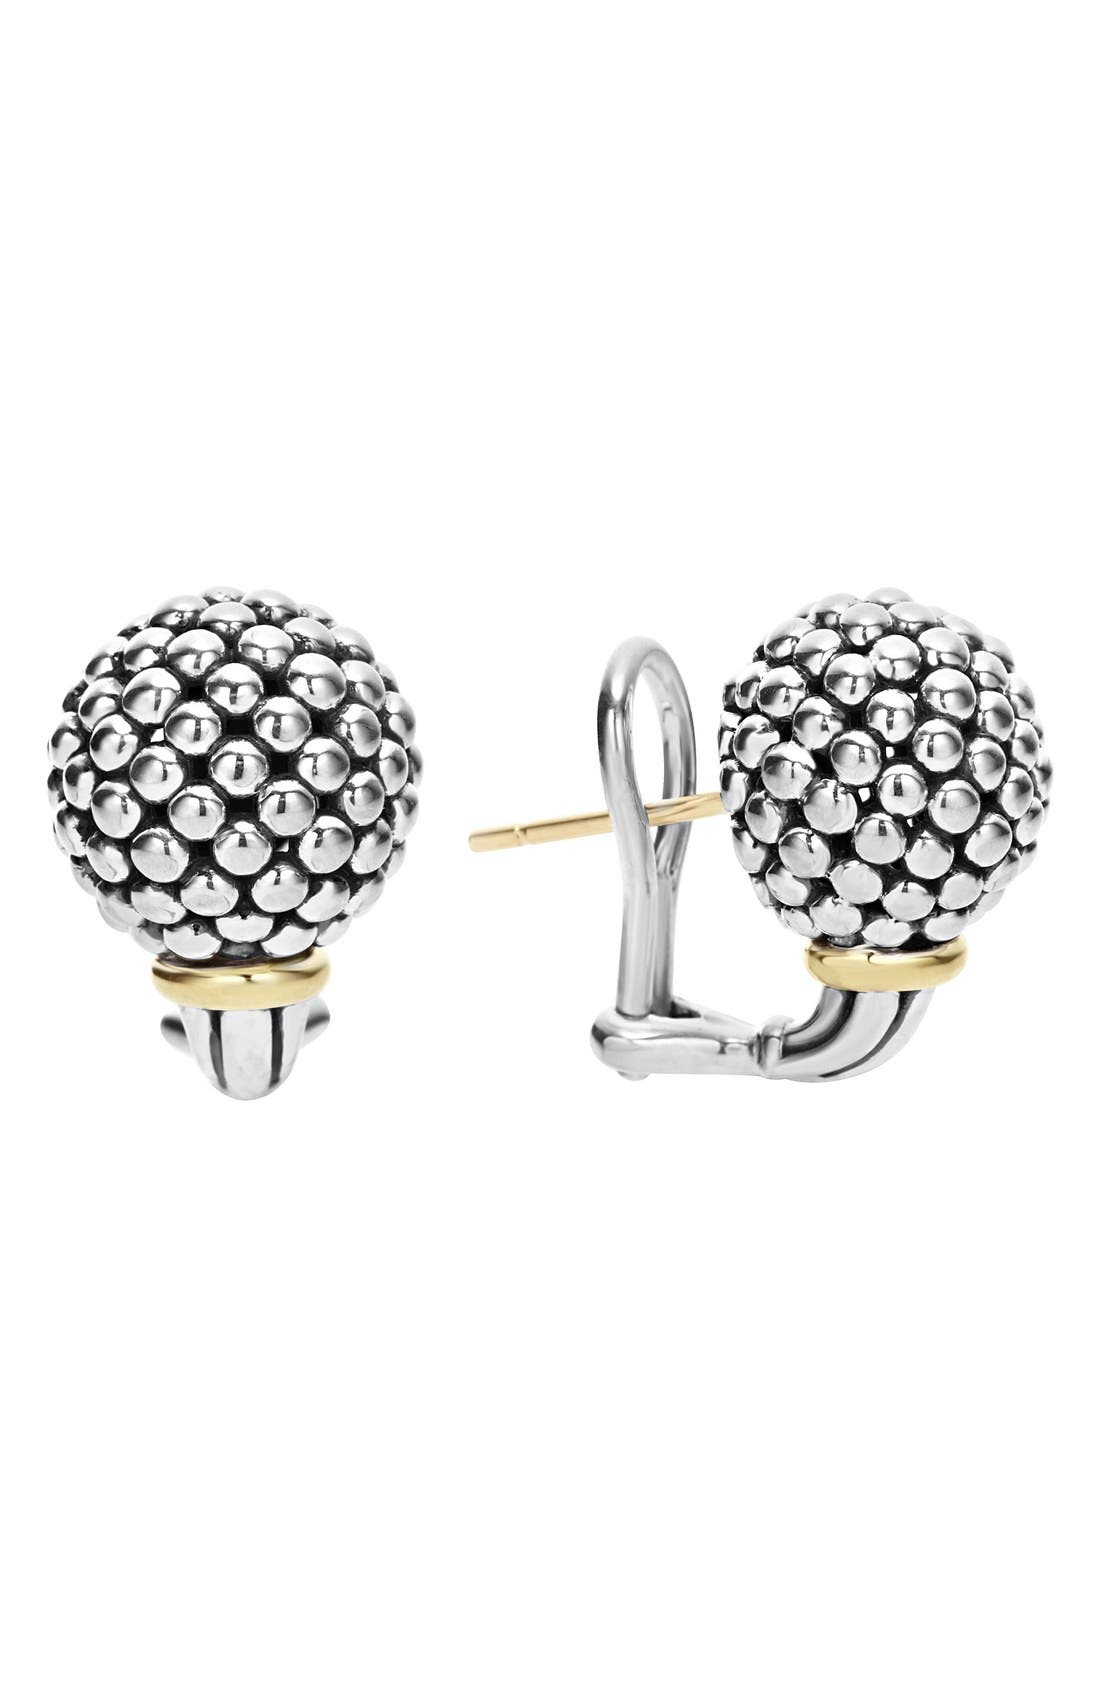 LAGOS Caviar Forever Stud Earrings